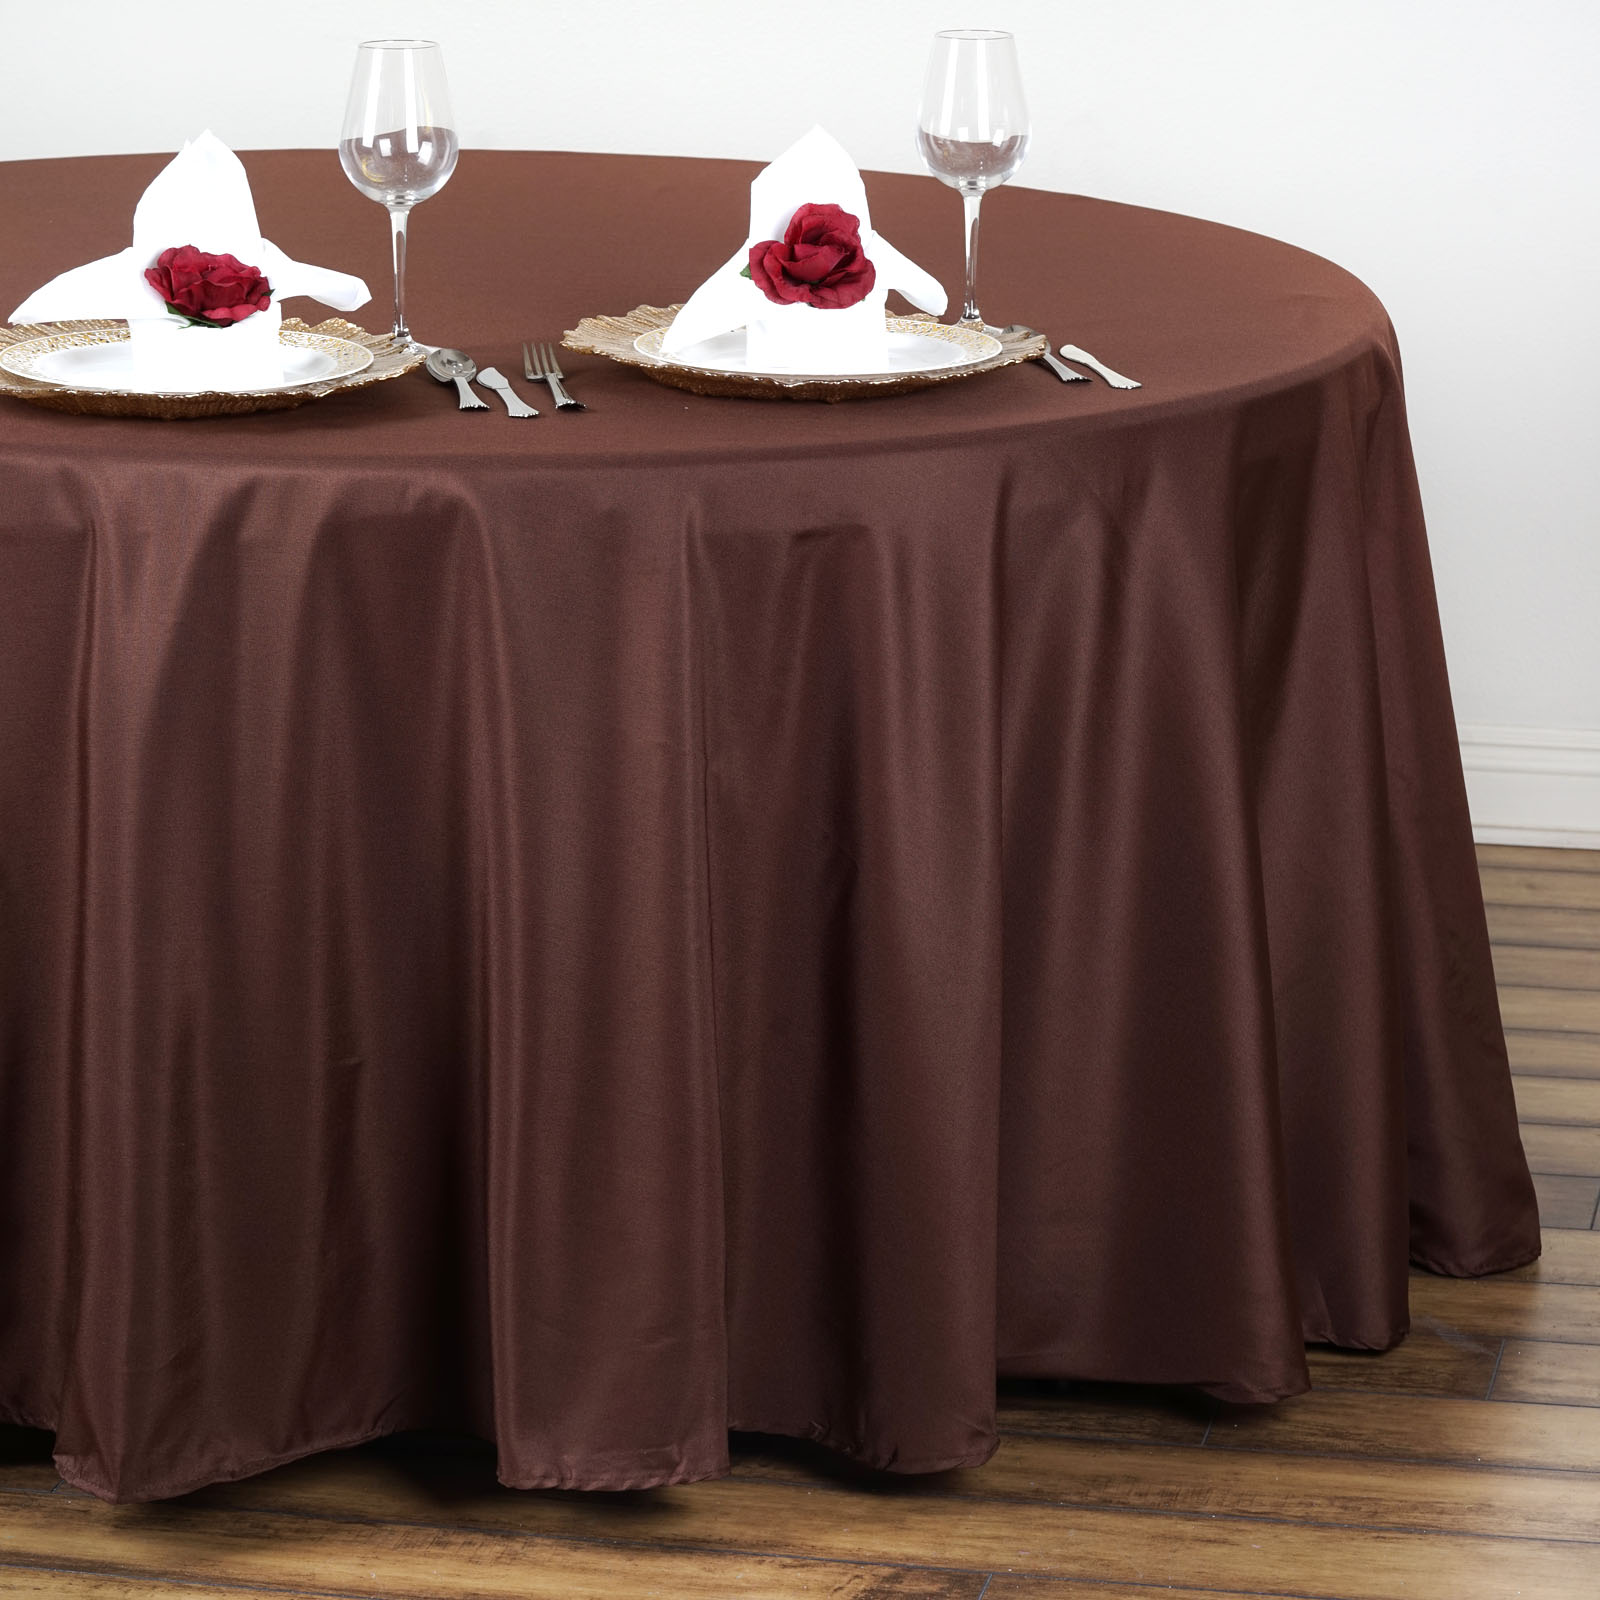 "108"" Round Polyester Tablecloth Wedding Table Linens ..."